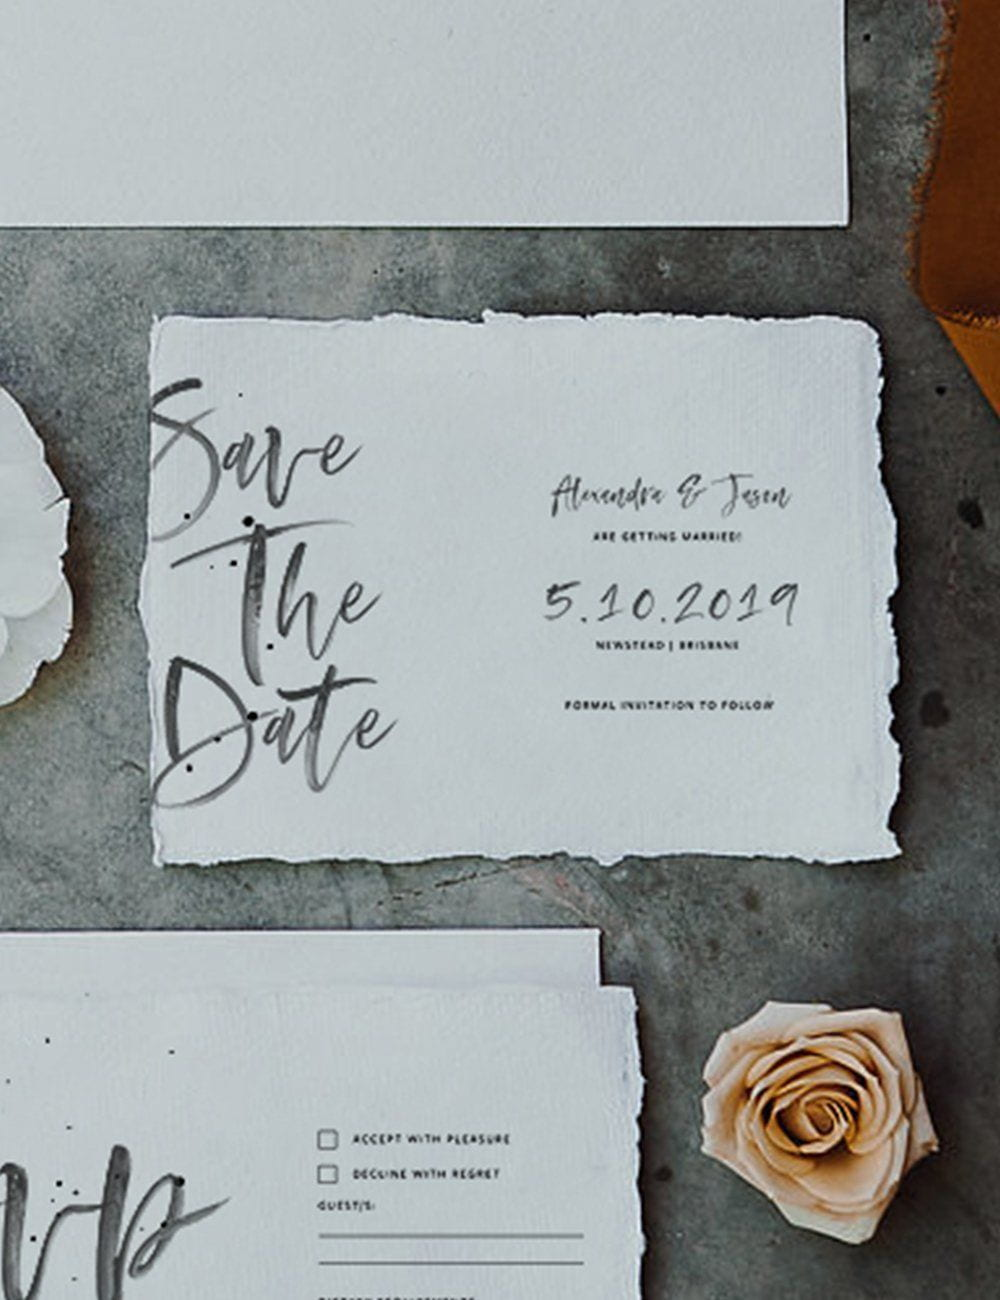 Wedding Card - Save The Date